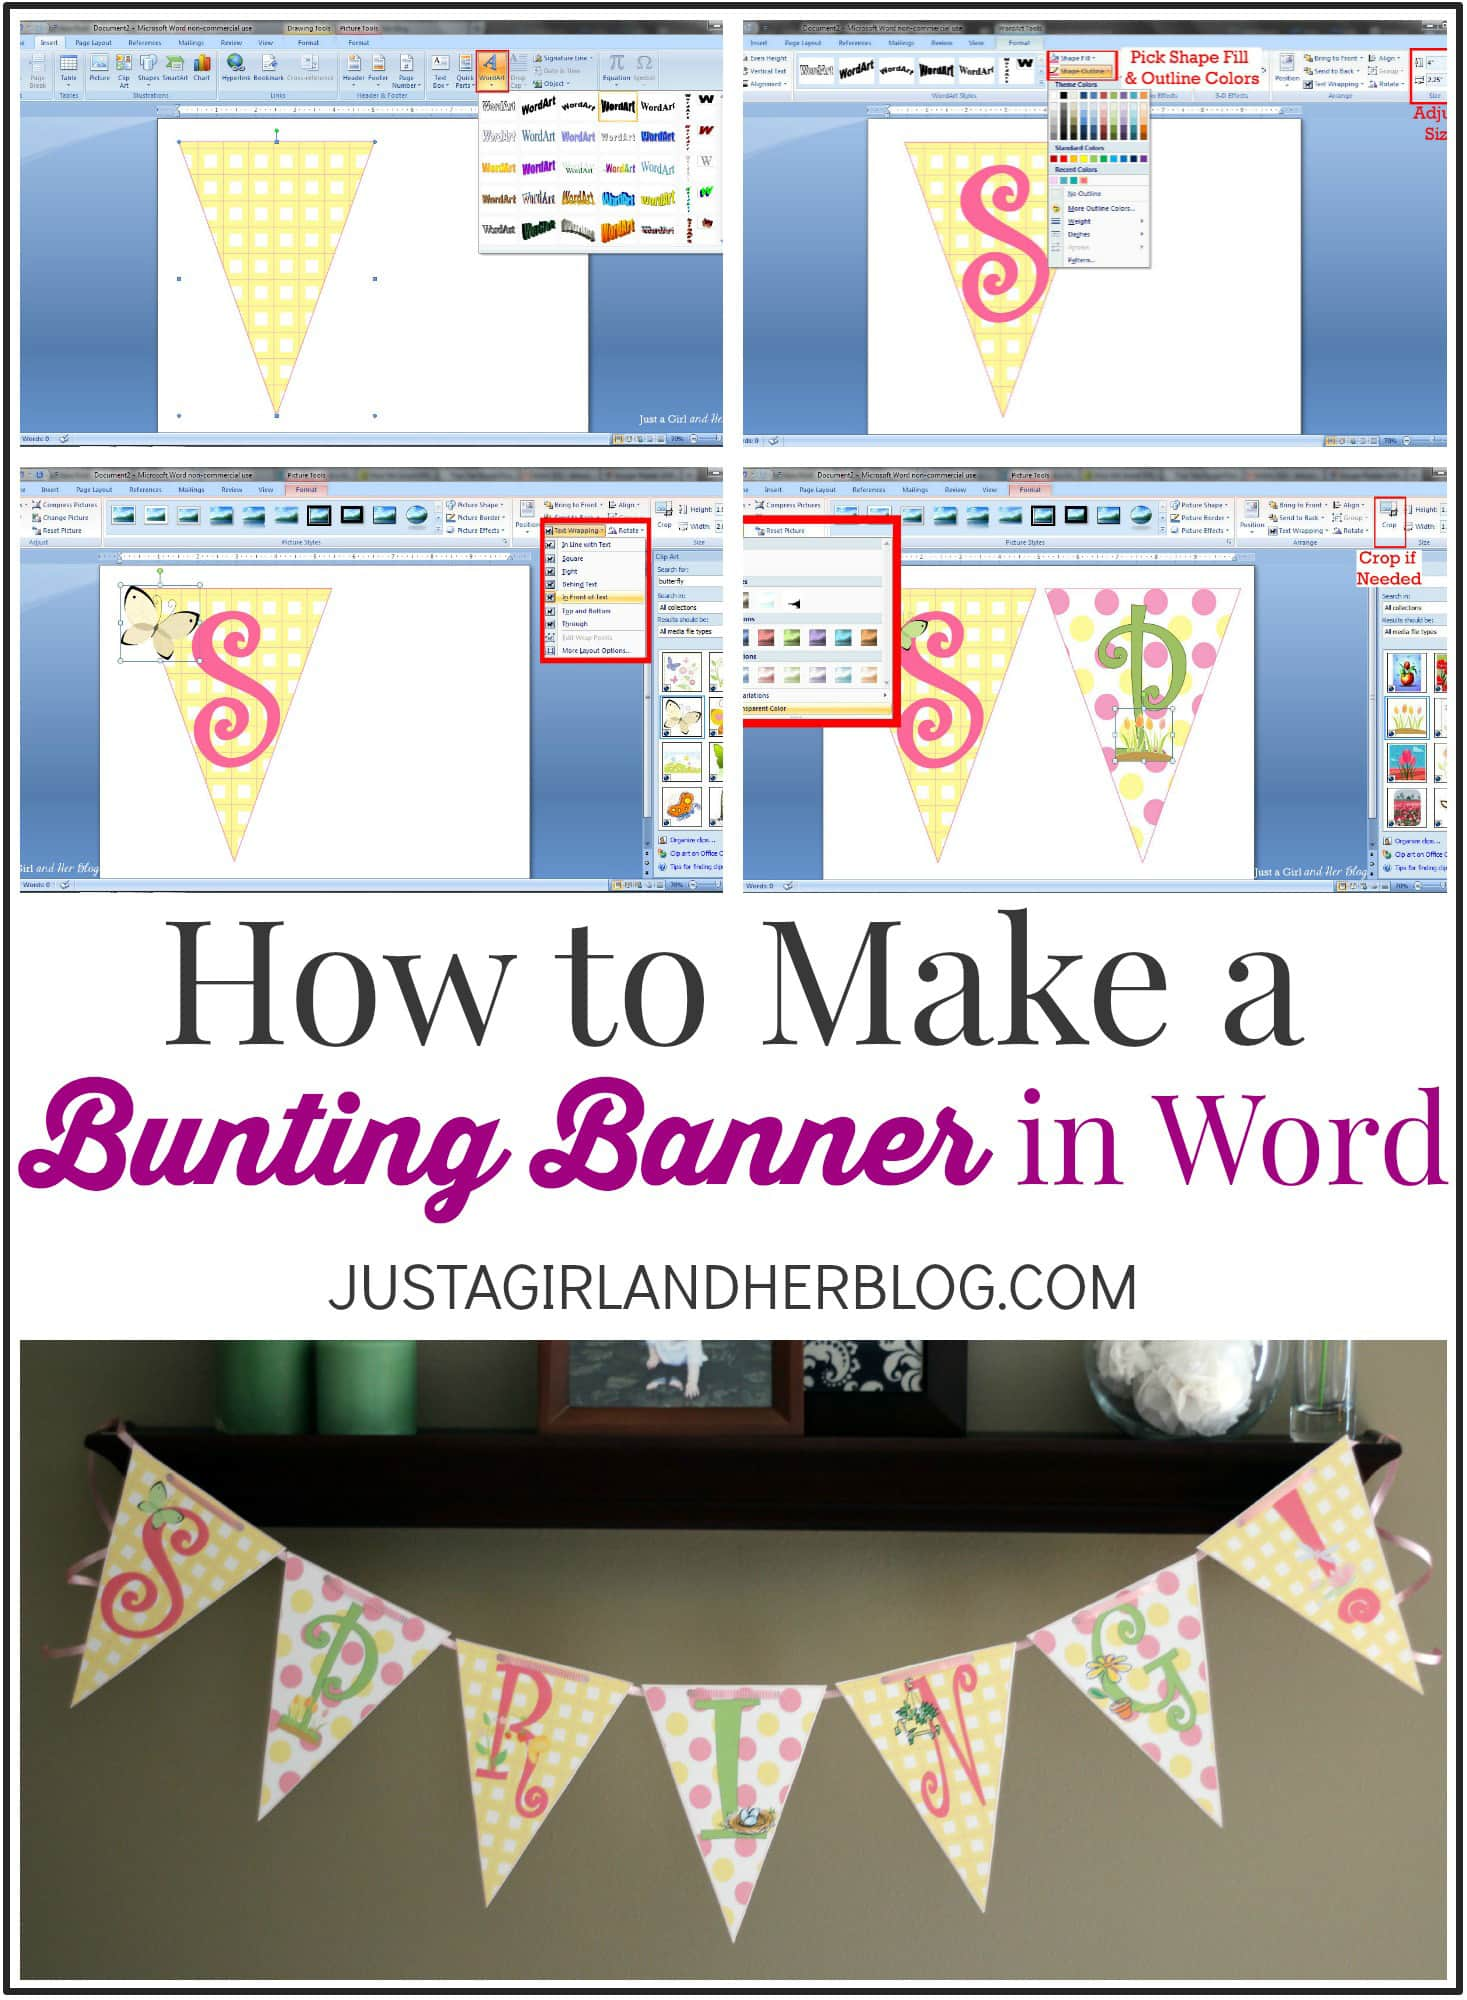 Cara Membuat Overline Di Word : membuat, overline, Bunting, Banner, {with, Tricks}